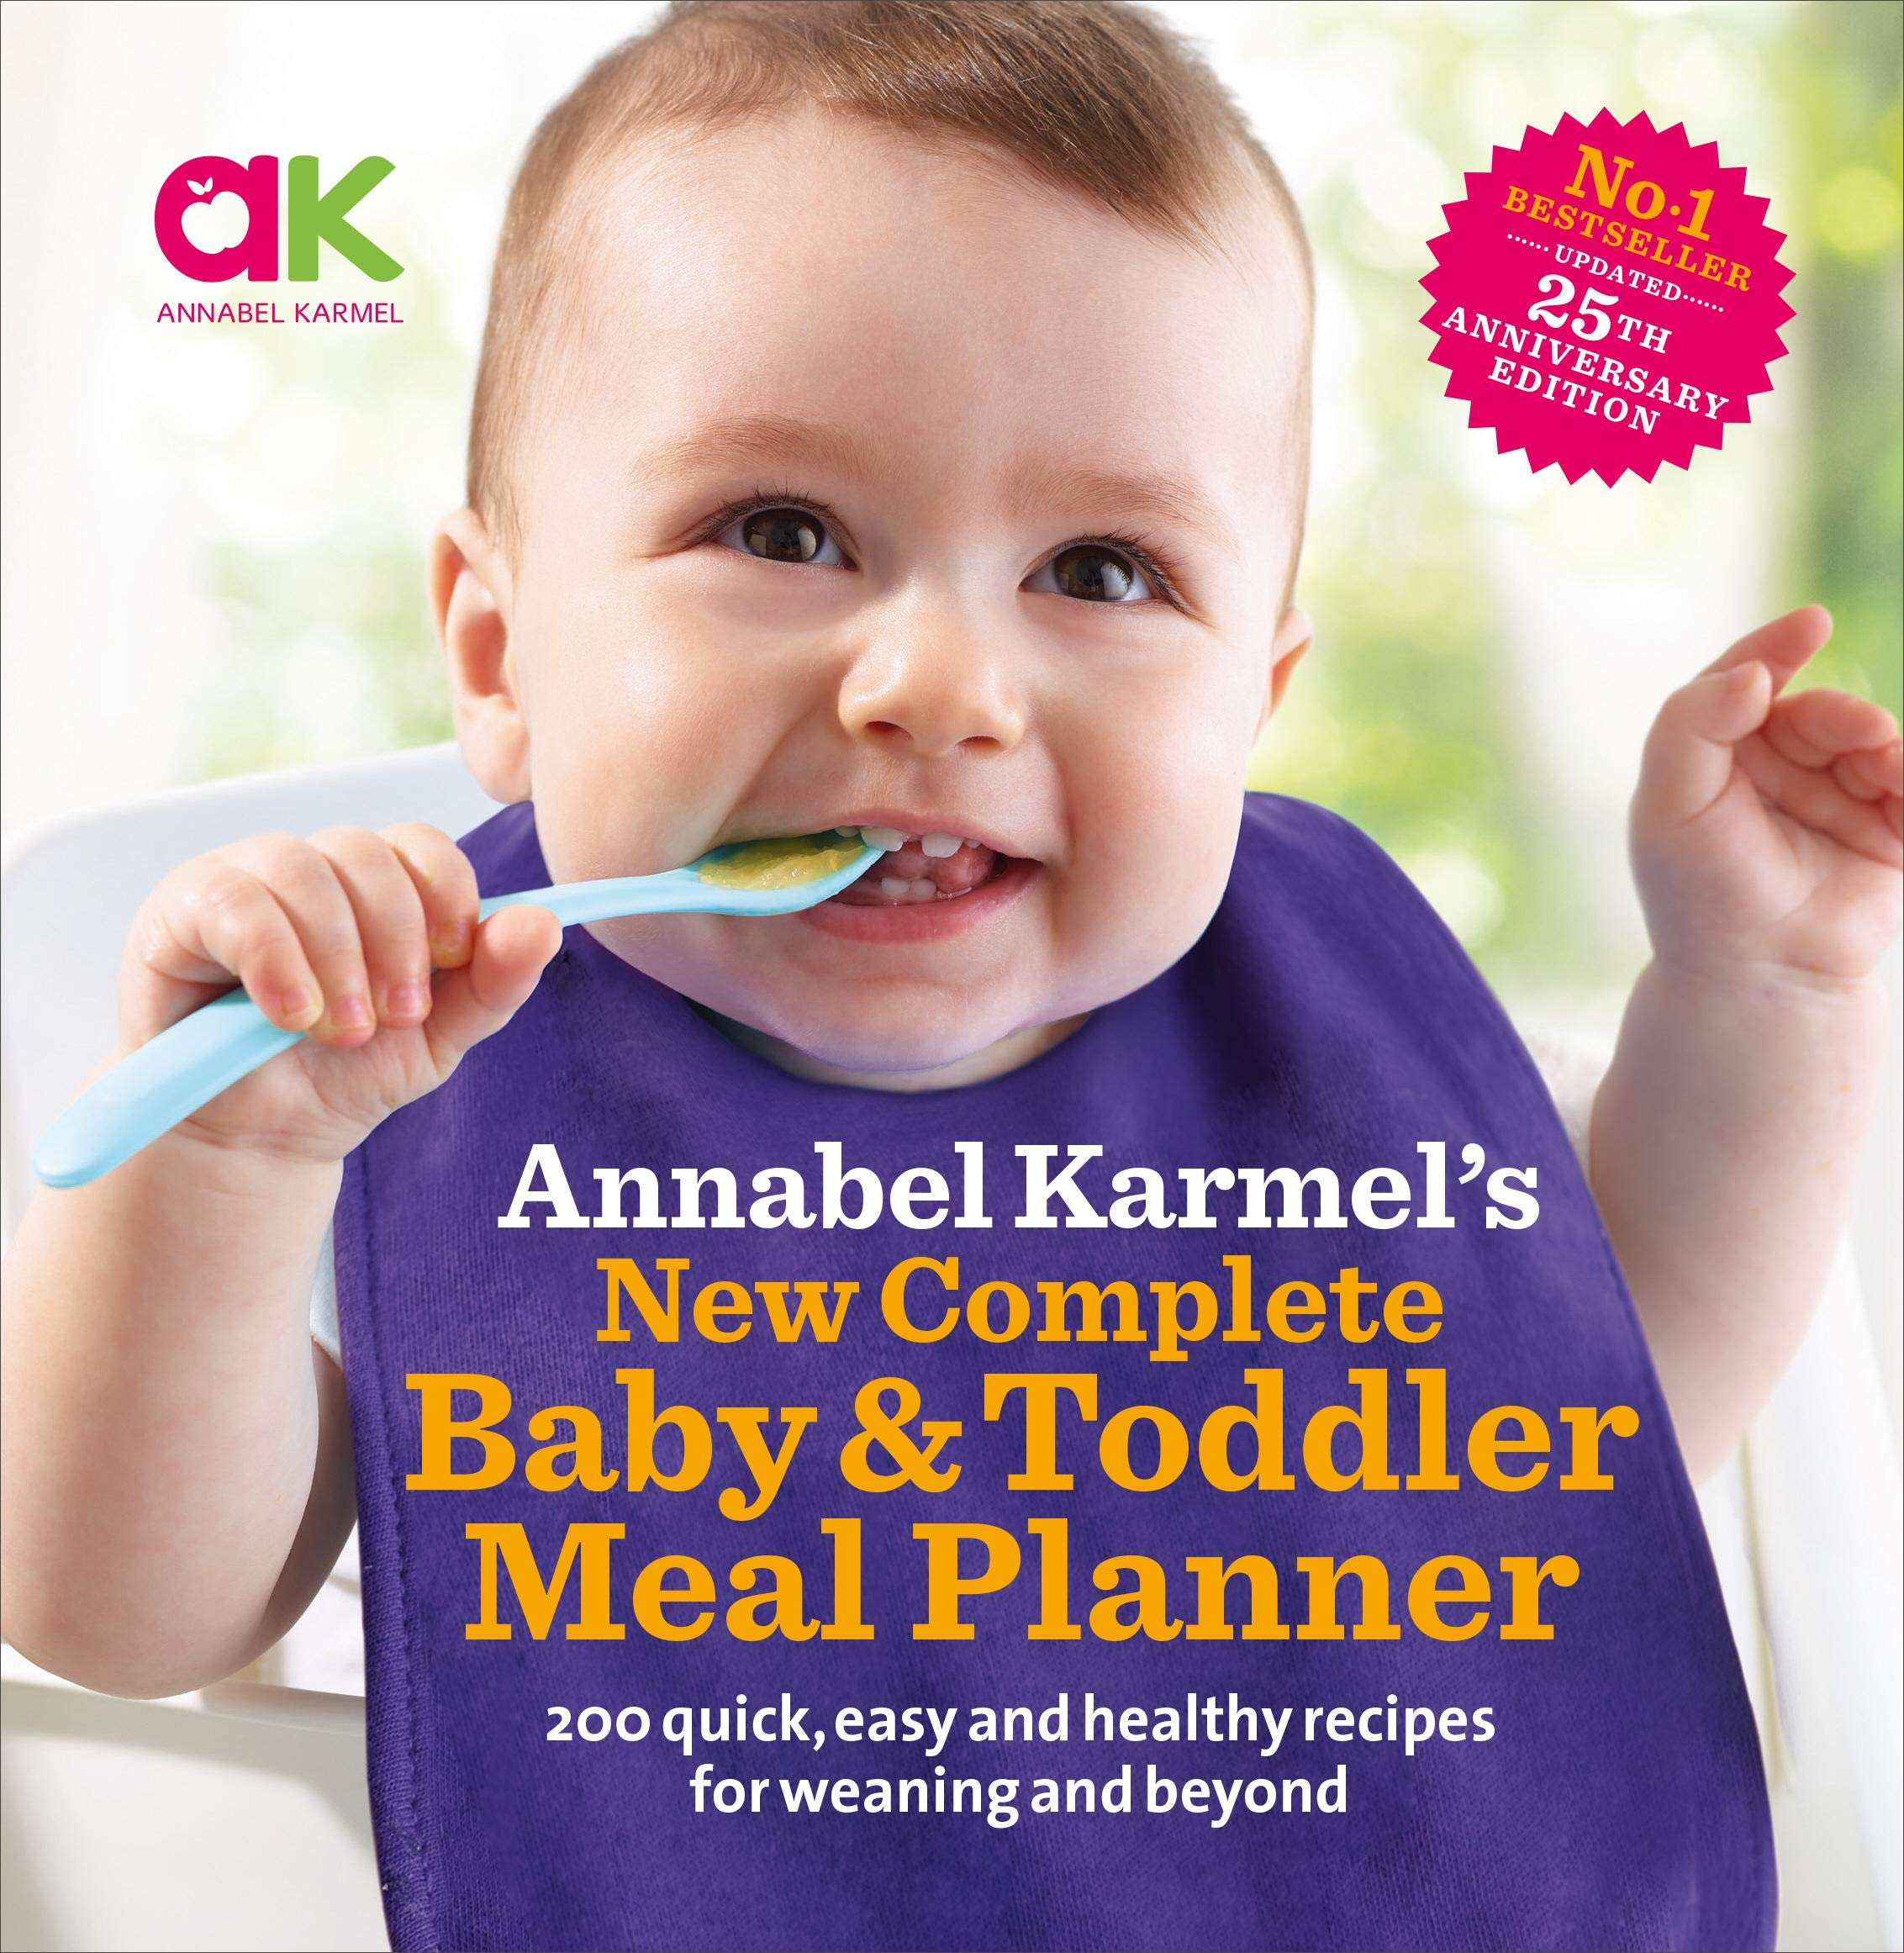 Annabel Karmel's New Complete Baby & Toddler Meal Planner – 25th anniversary edition